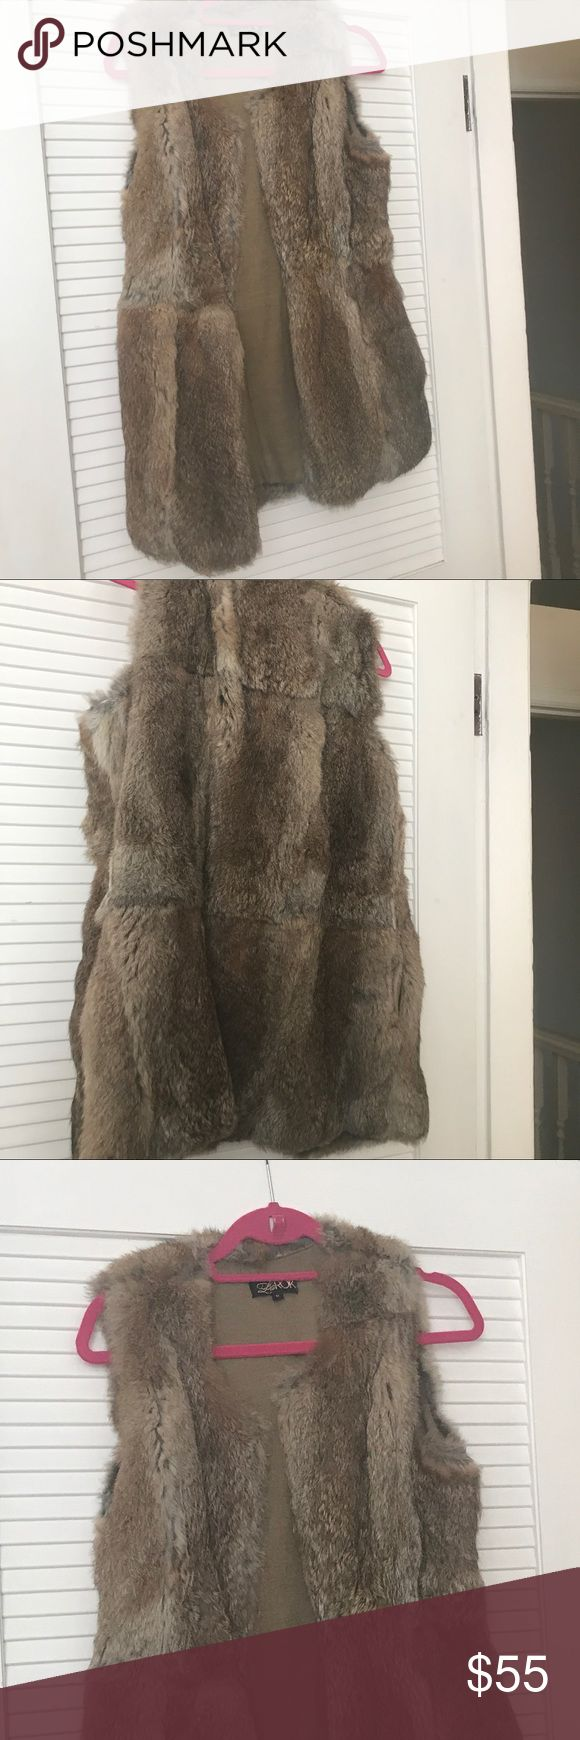 100% rabbit fur vest 100% rabbit fur vest. In perfect condition. Lined. Has side pockets and one central clip at front to keep it closed if you want. la rok Jackets & Coats Vests